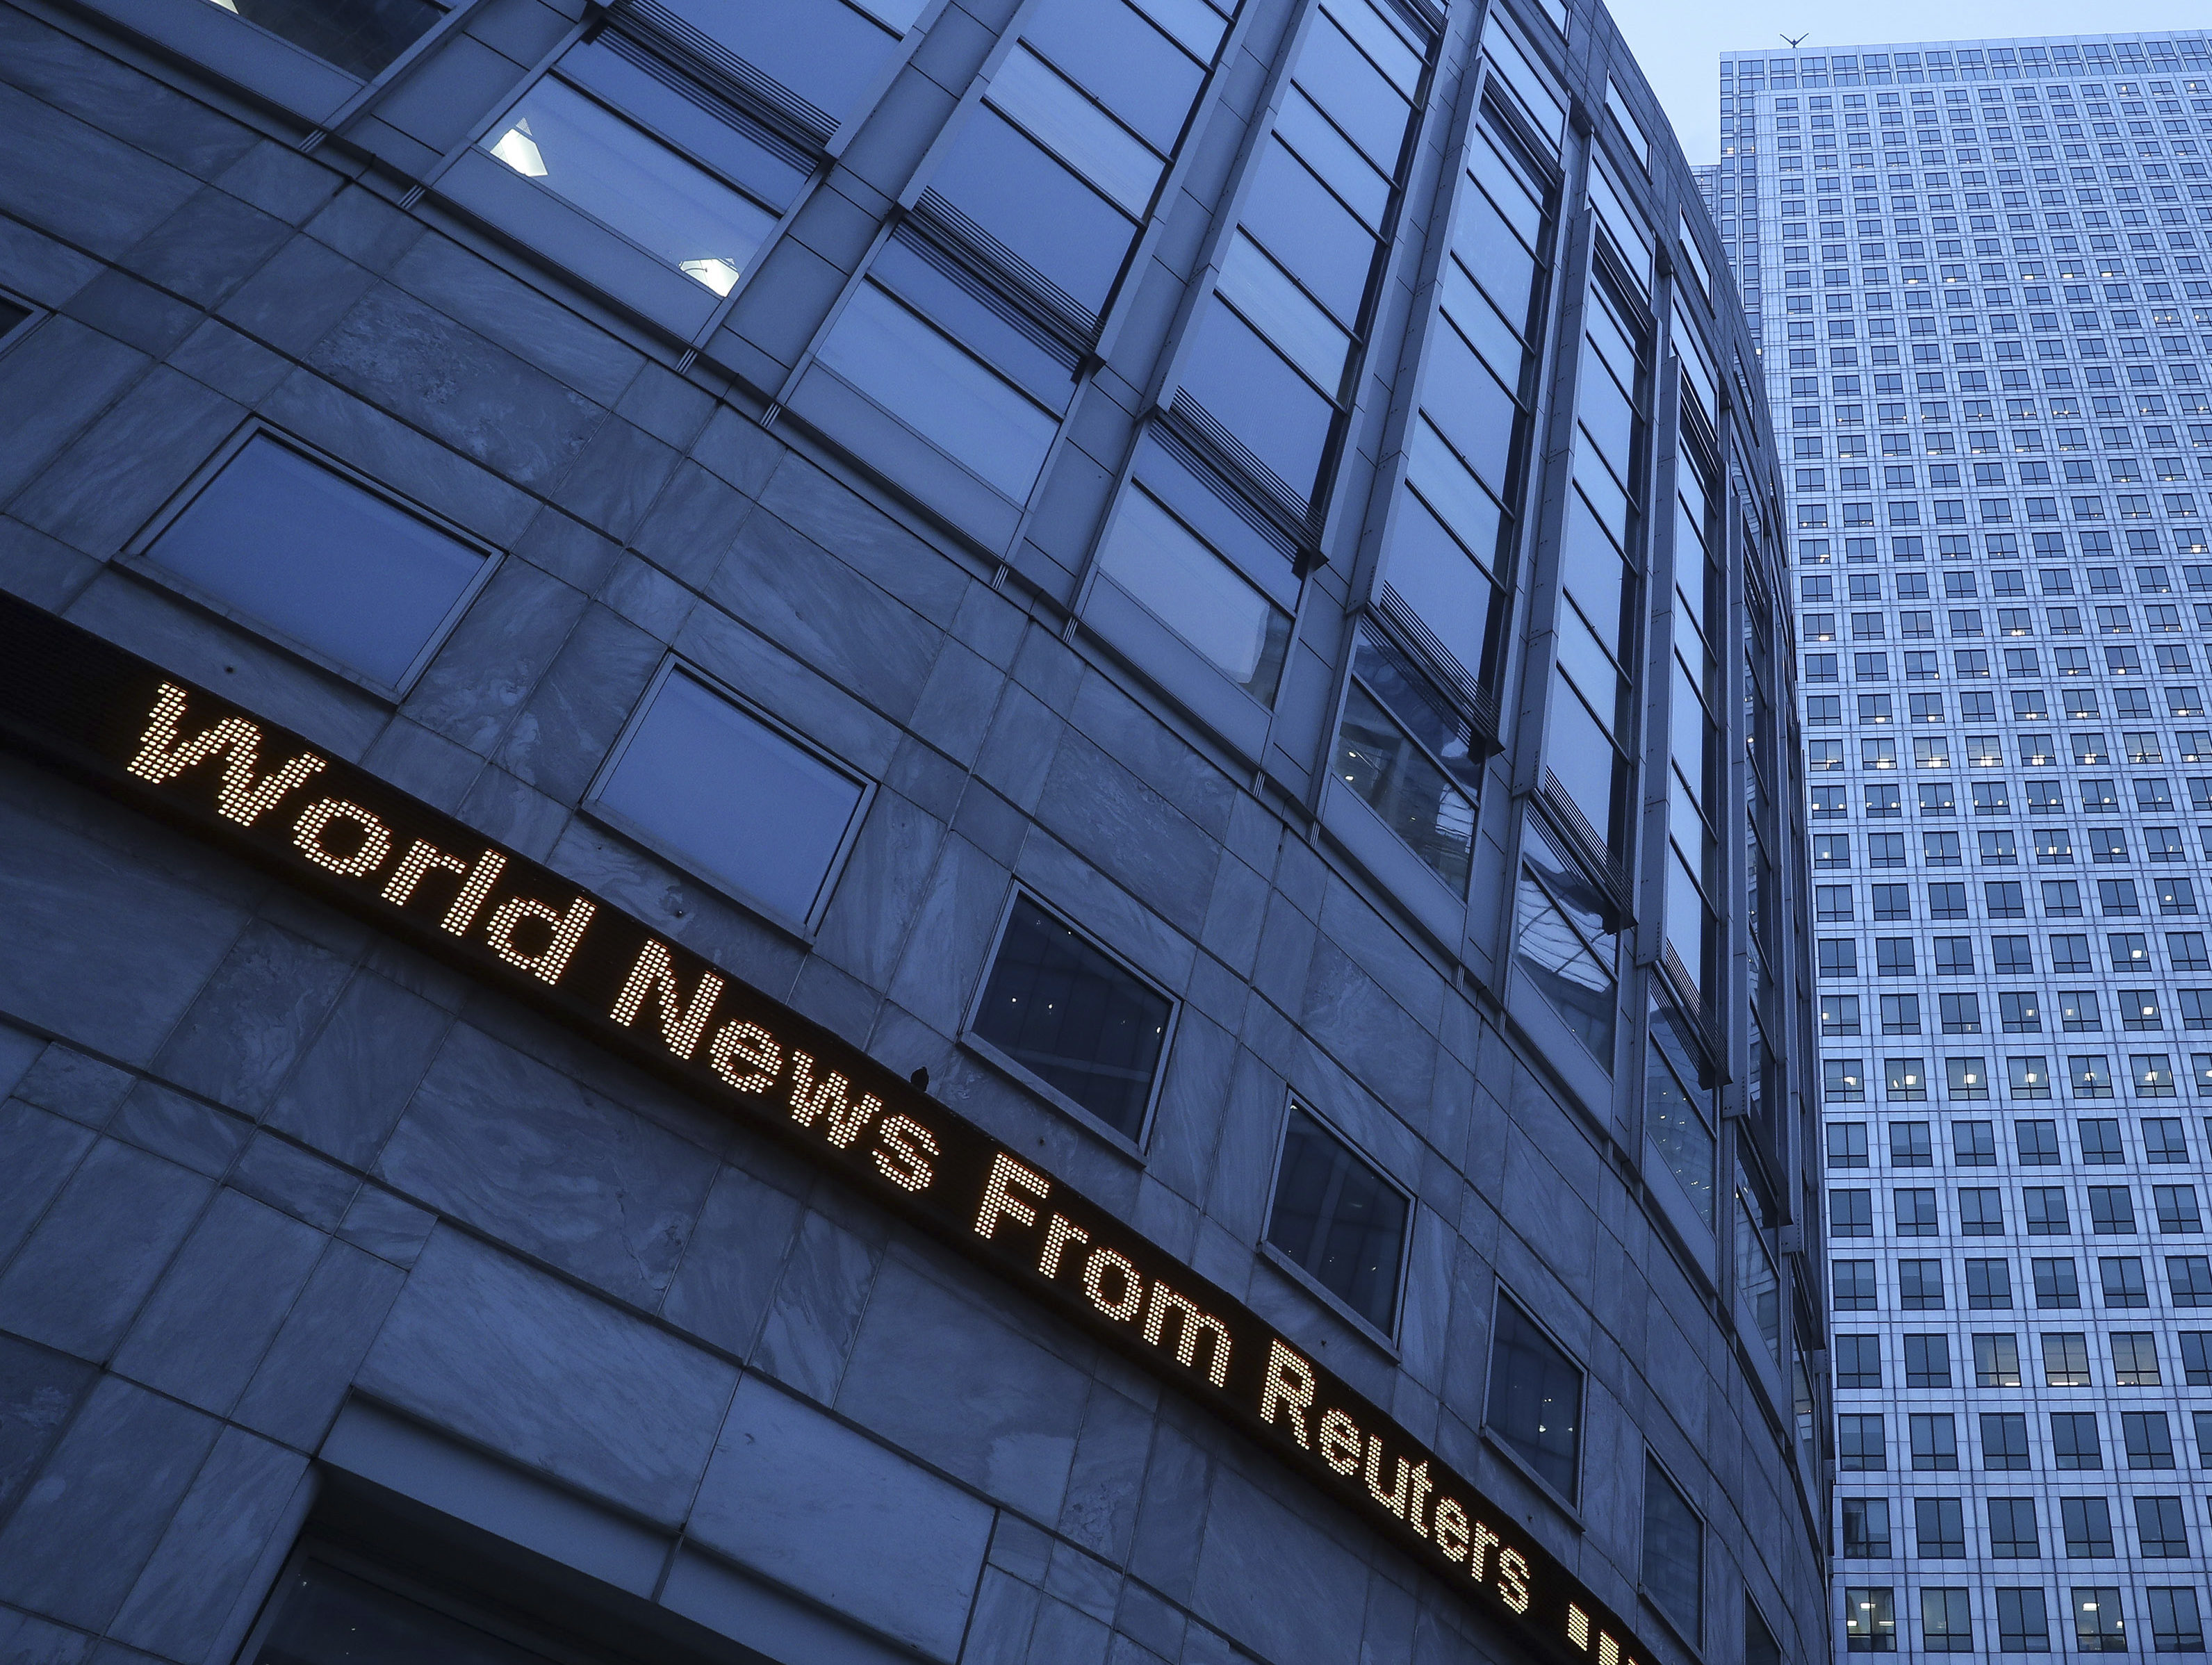 Journalist jobs to go at Reuters news agency in global review of newsrooms